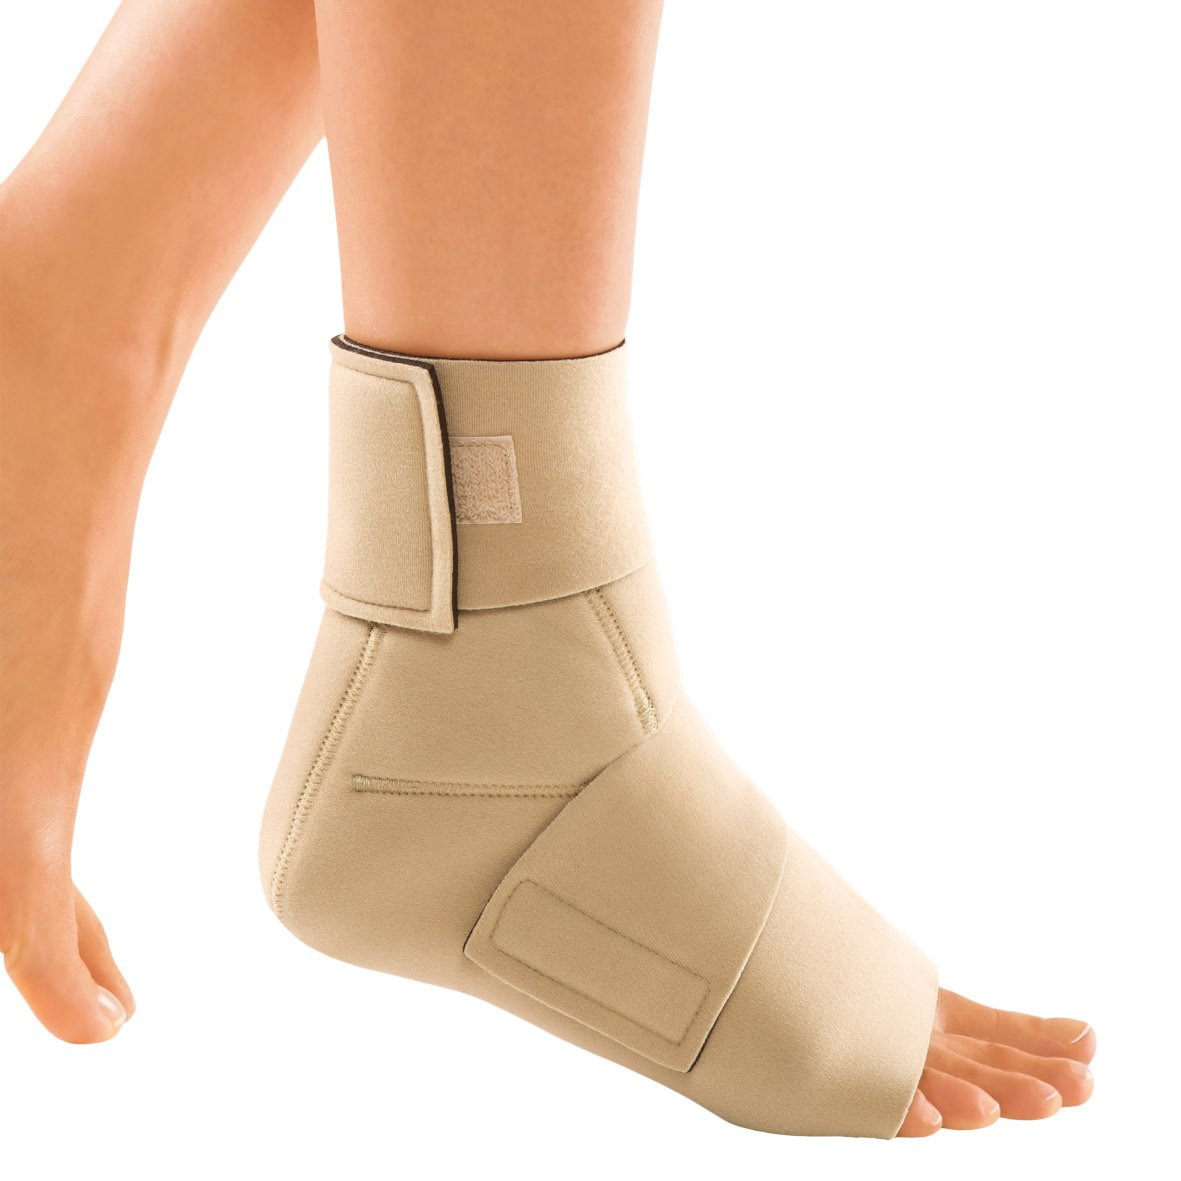 e48257eb2d1000 Home CircAid Juxta Fit Premium Ankle-Foot Wrap. Hover to zoom